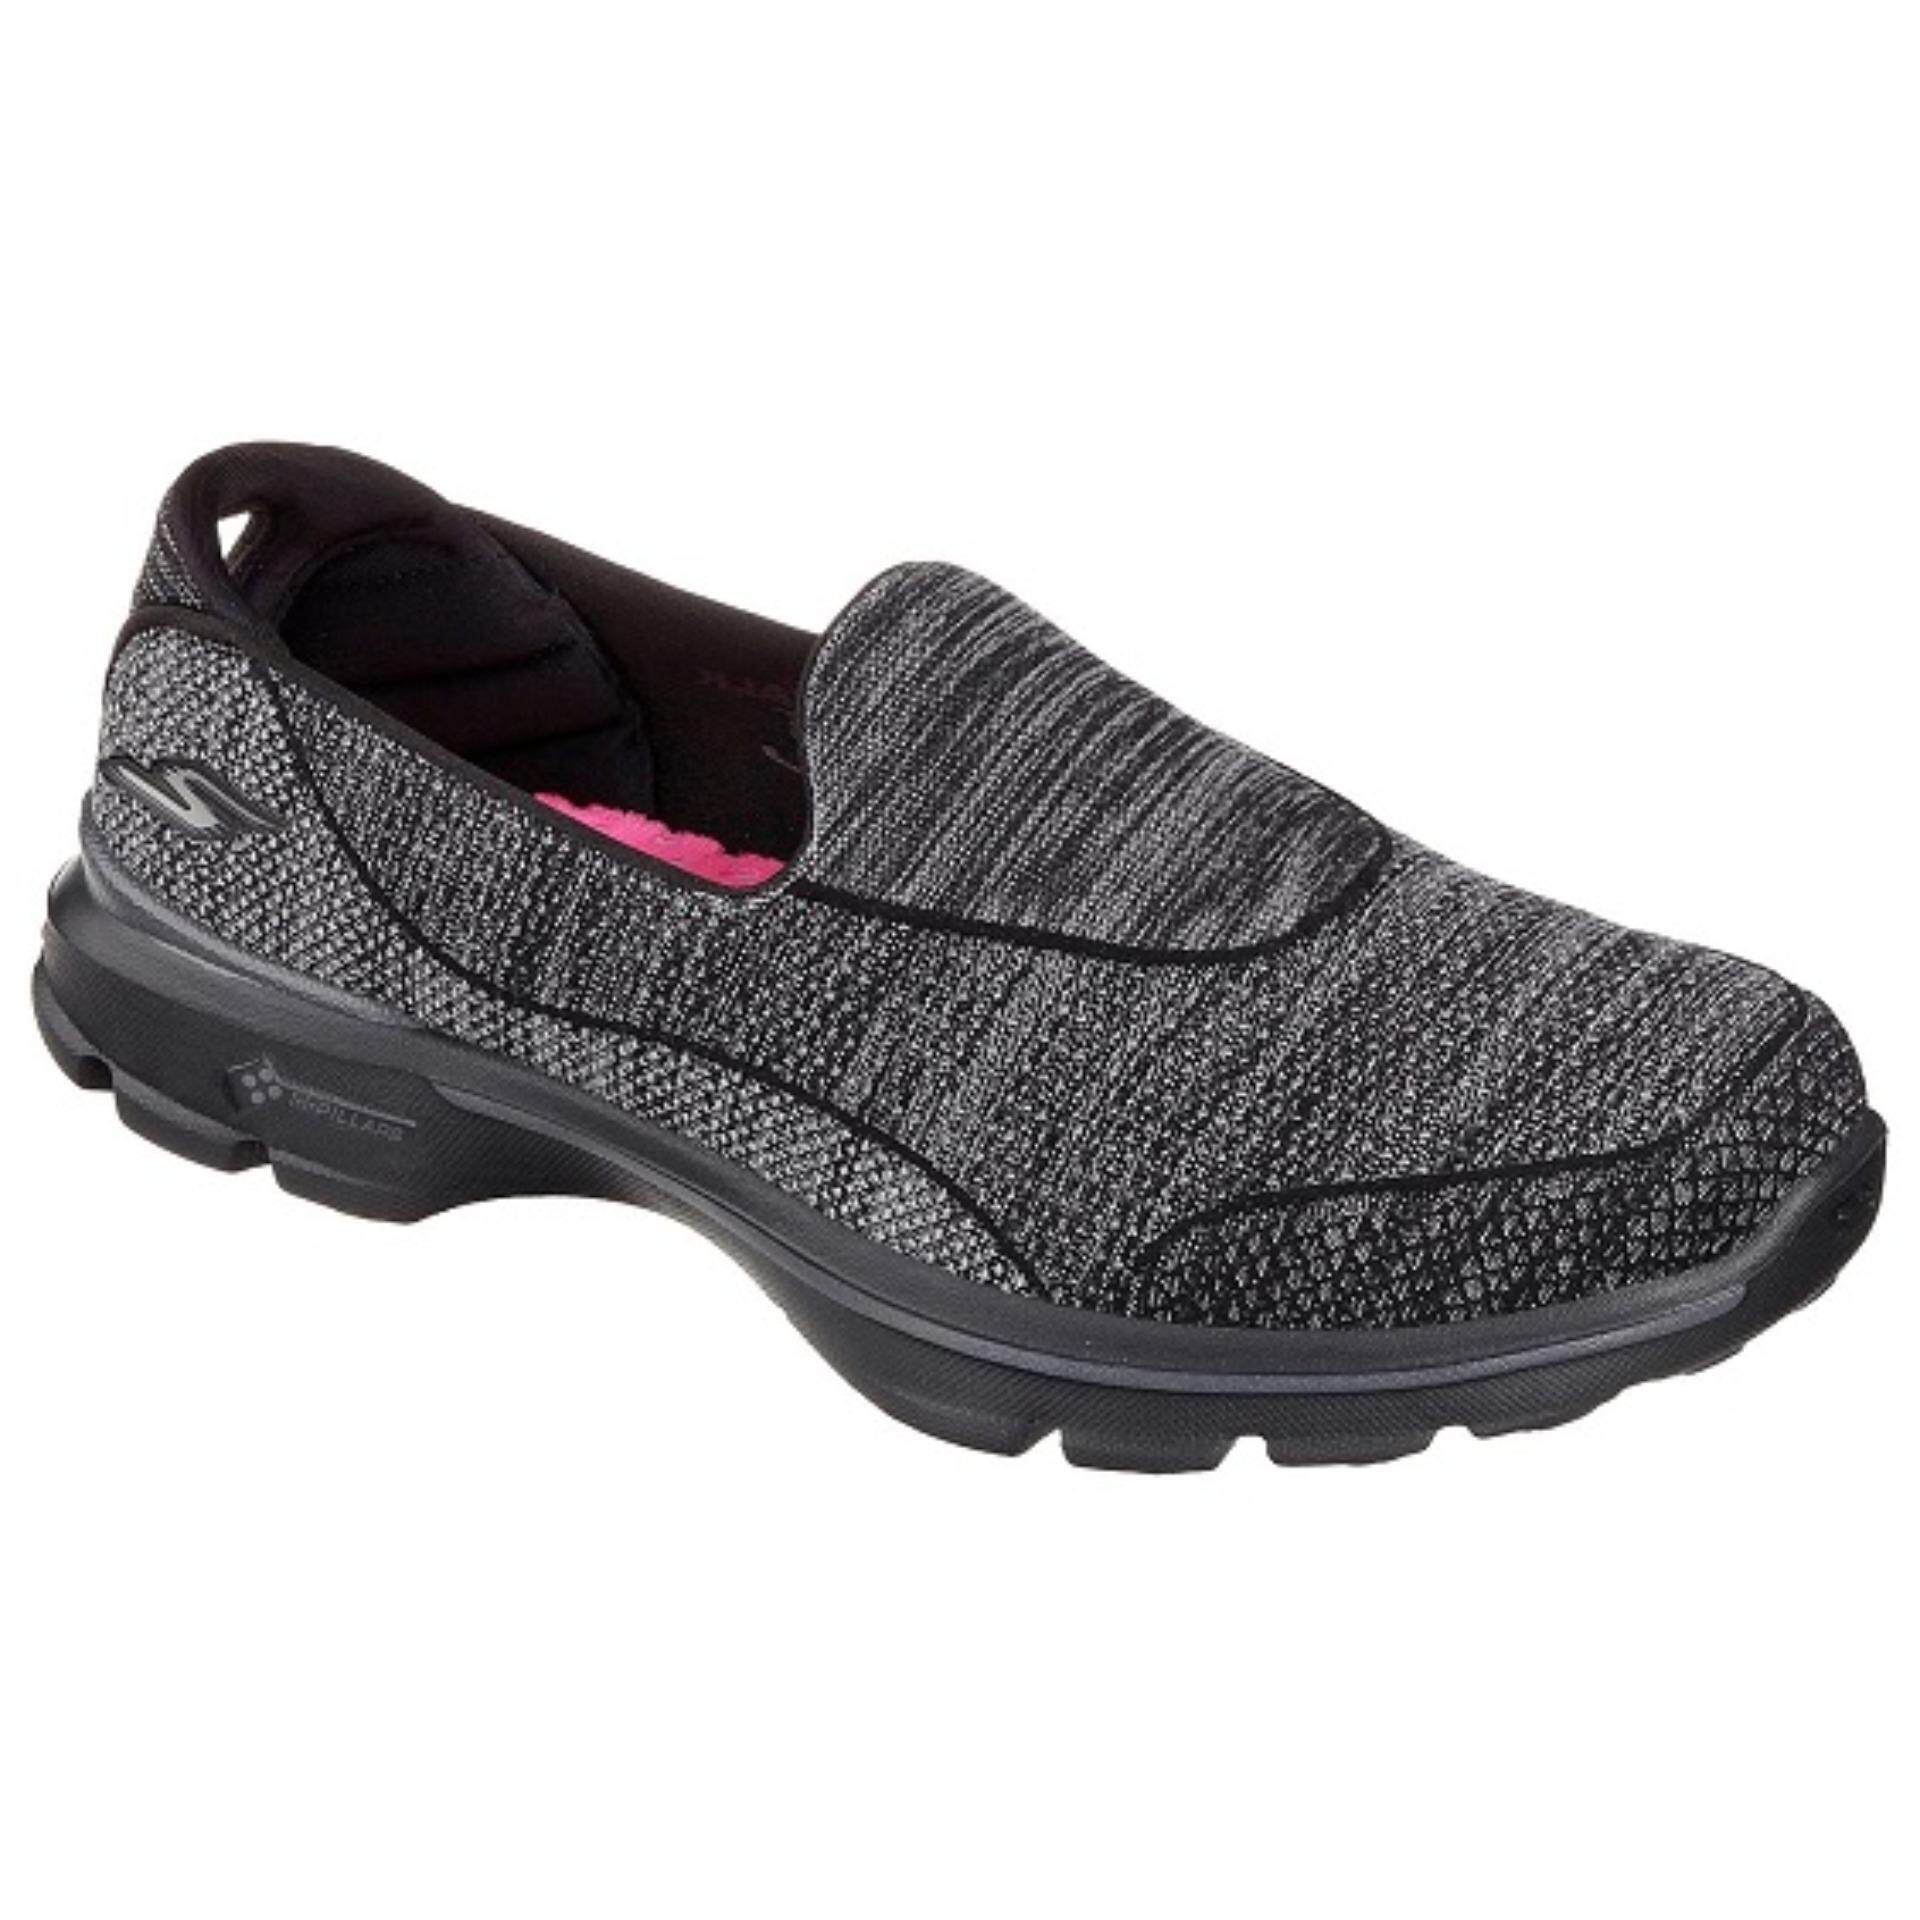 fdbfcb6c47de Skechers Malaysia Women s Sports Shoes price in Malaysia - Best ...